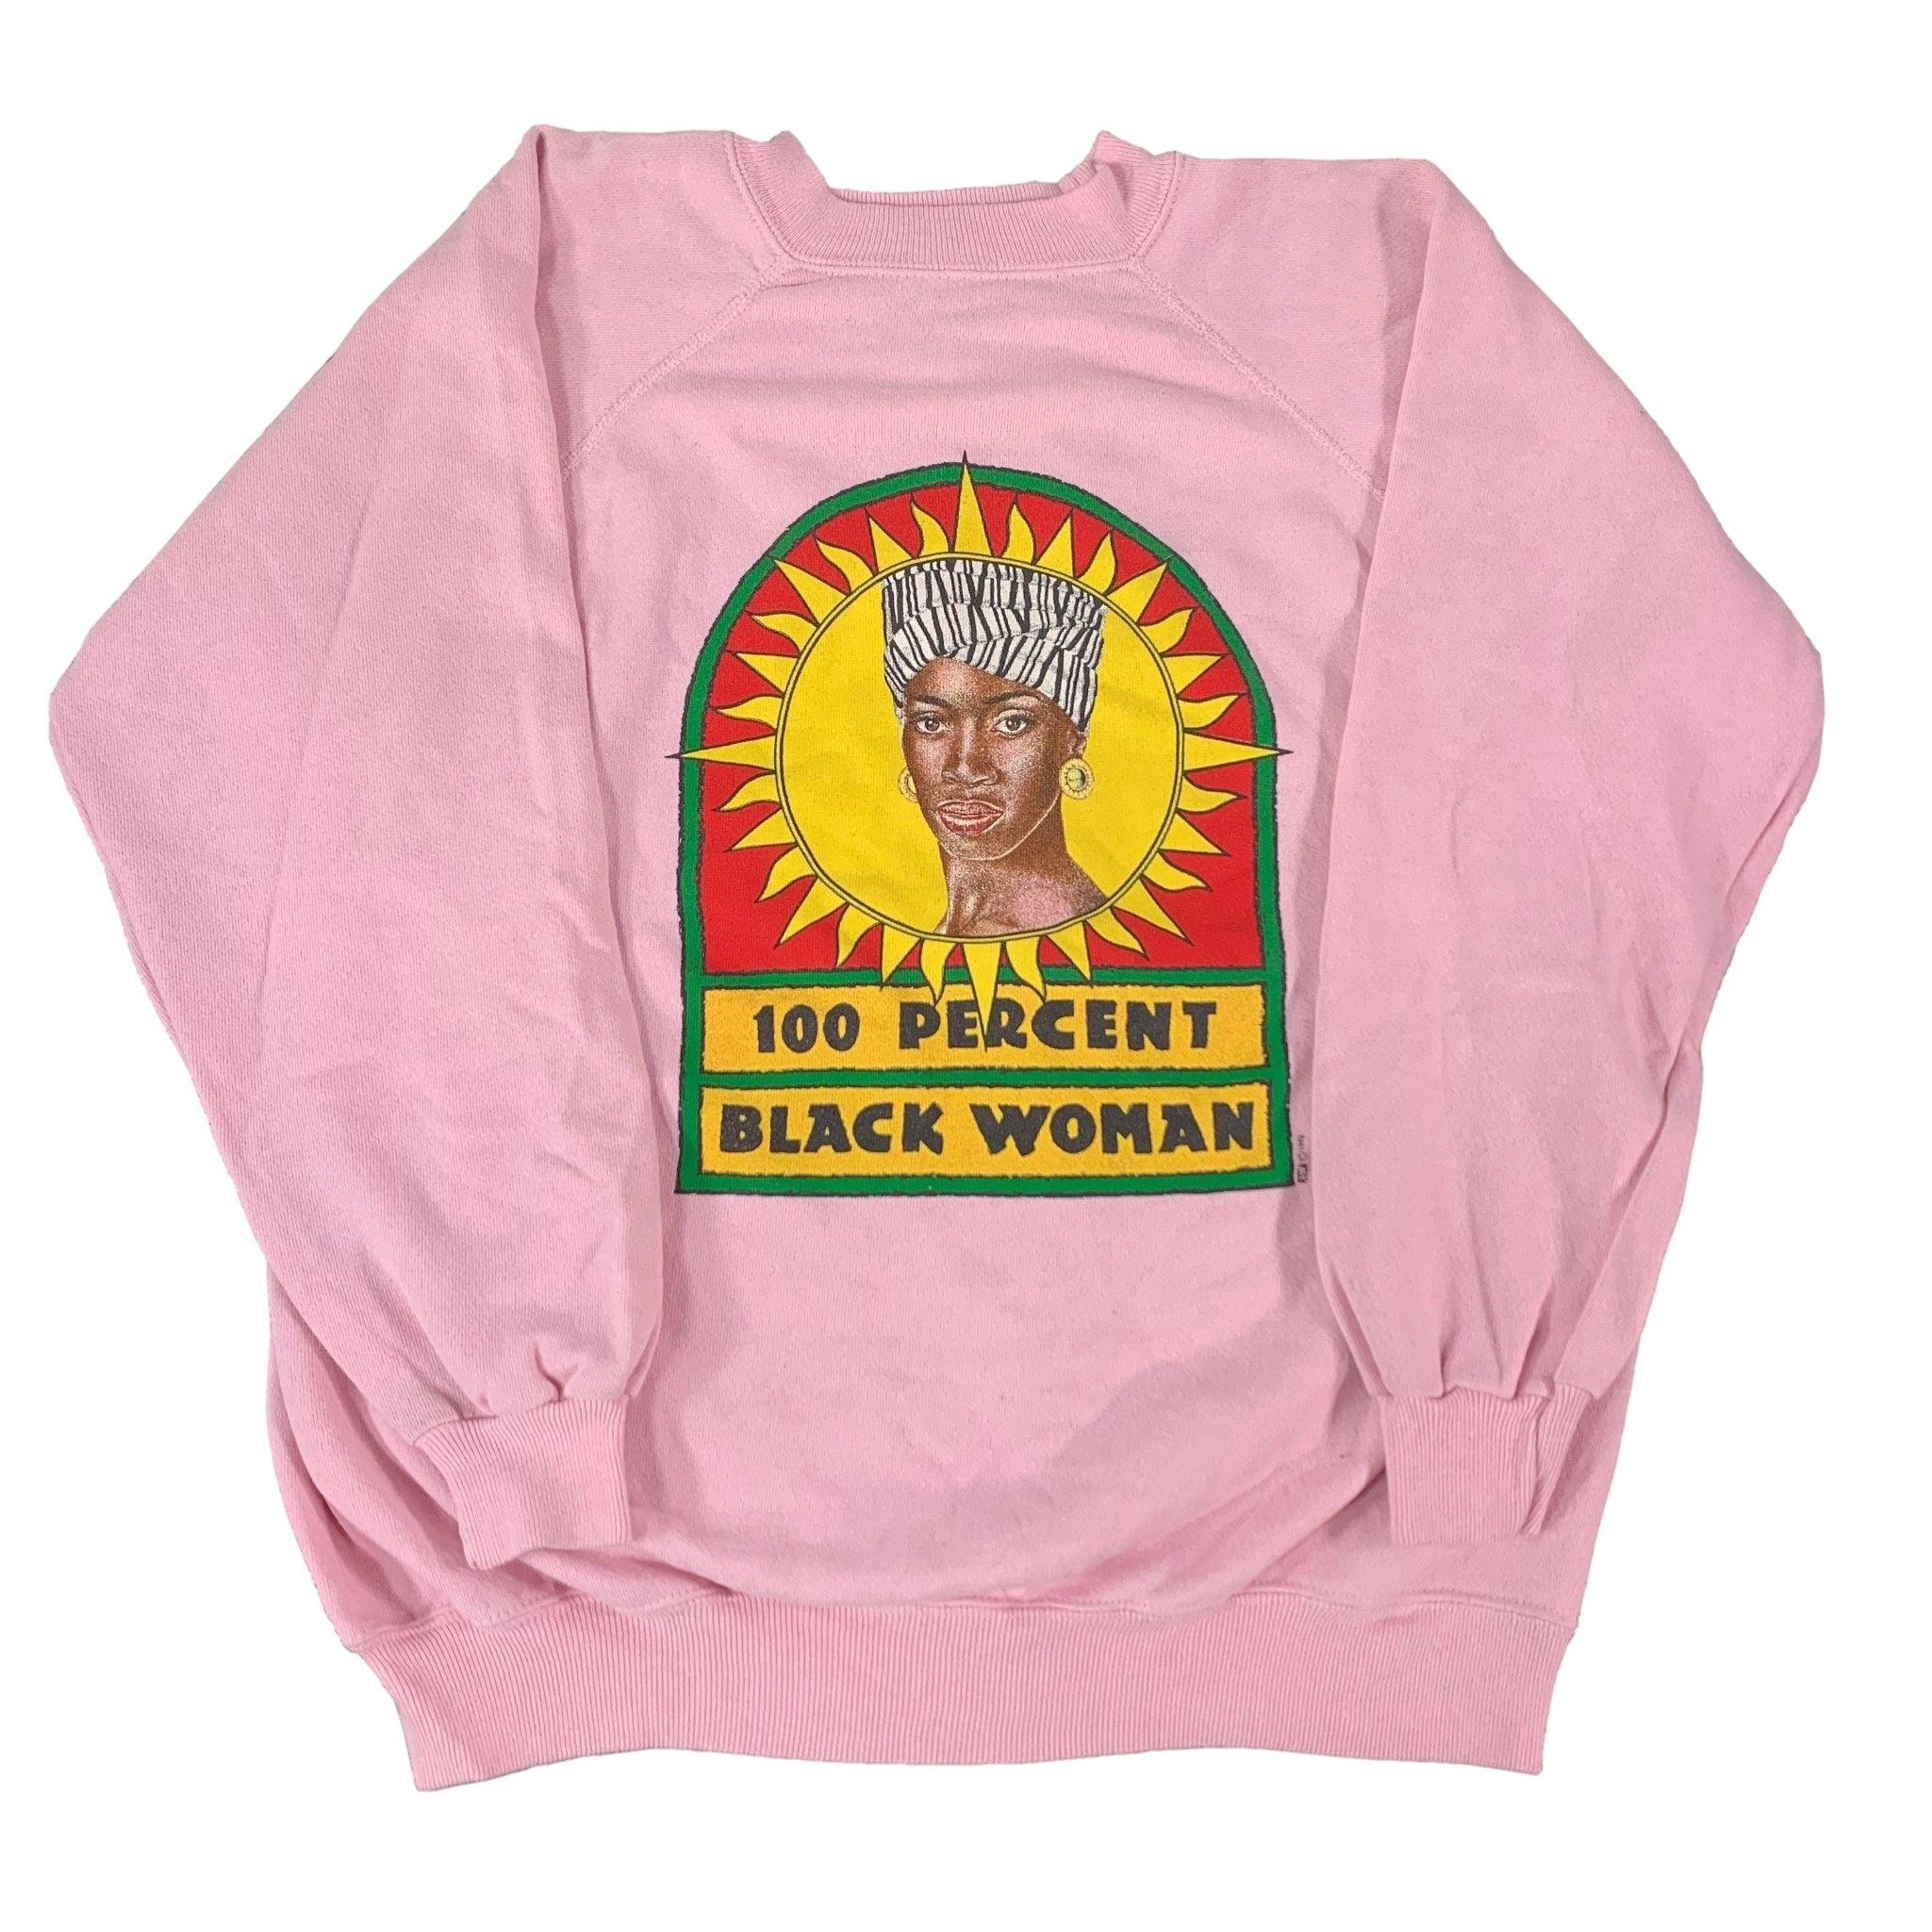 "Vintage 100 Percent ""Black Woman"" Sweatshirt"